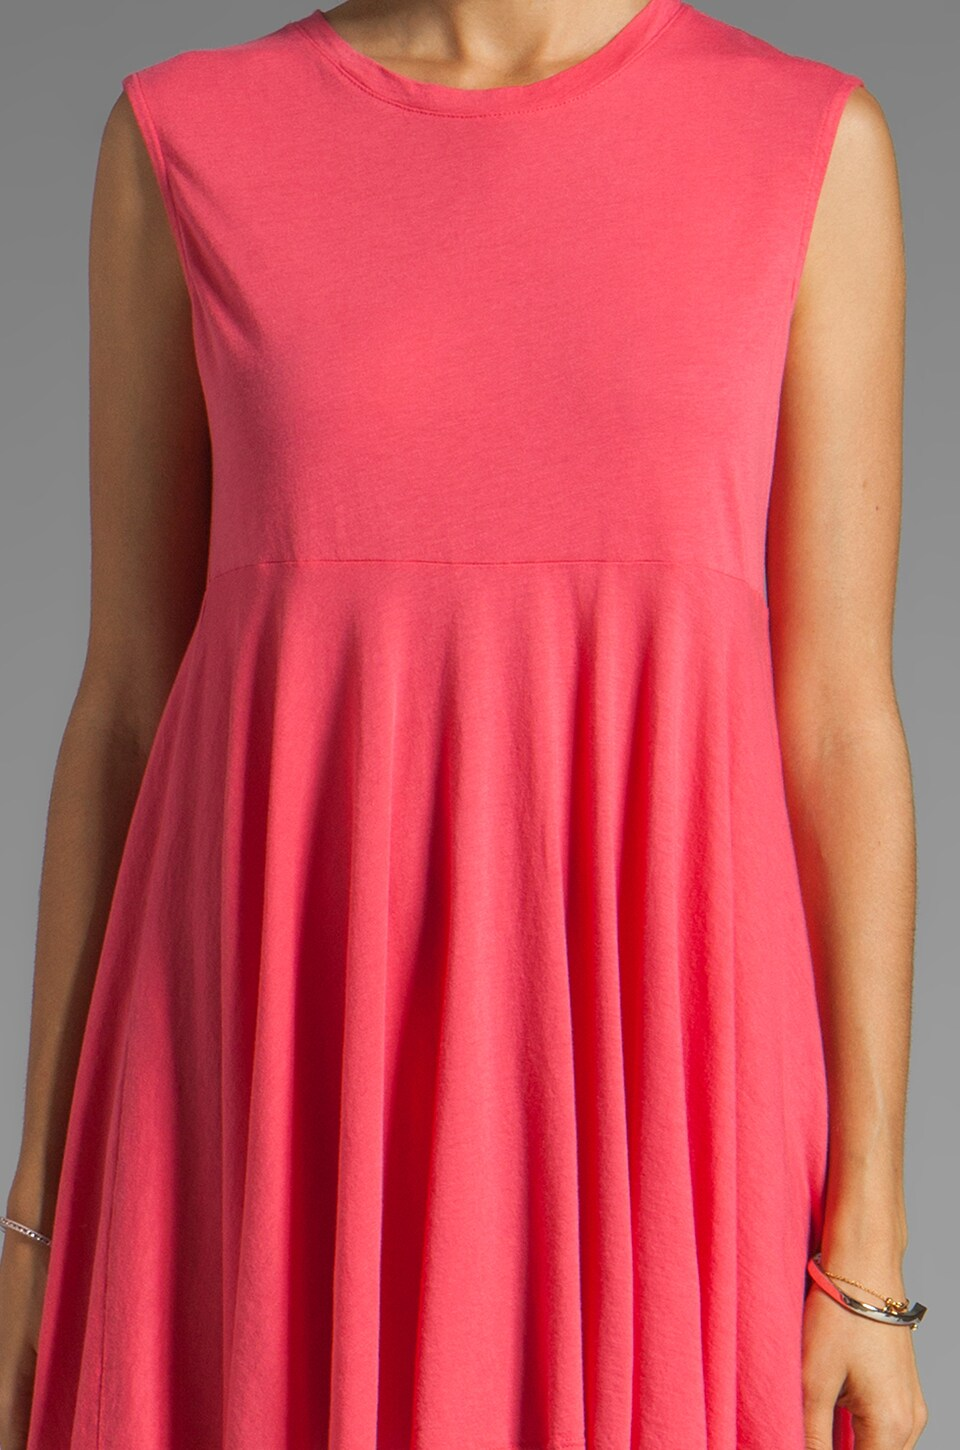 Daftbird Sleeveless Summer Dress in Cosmo